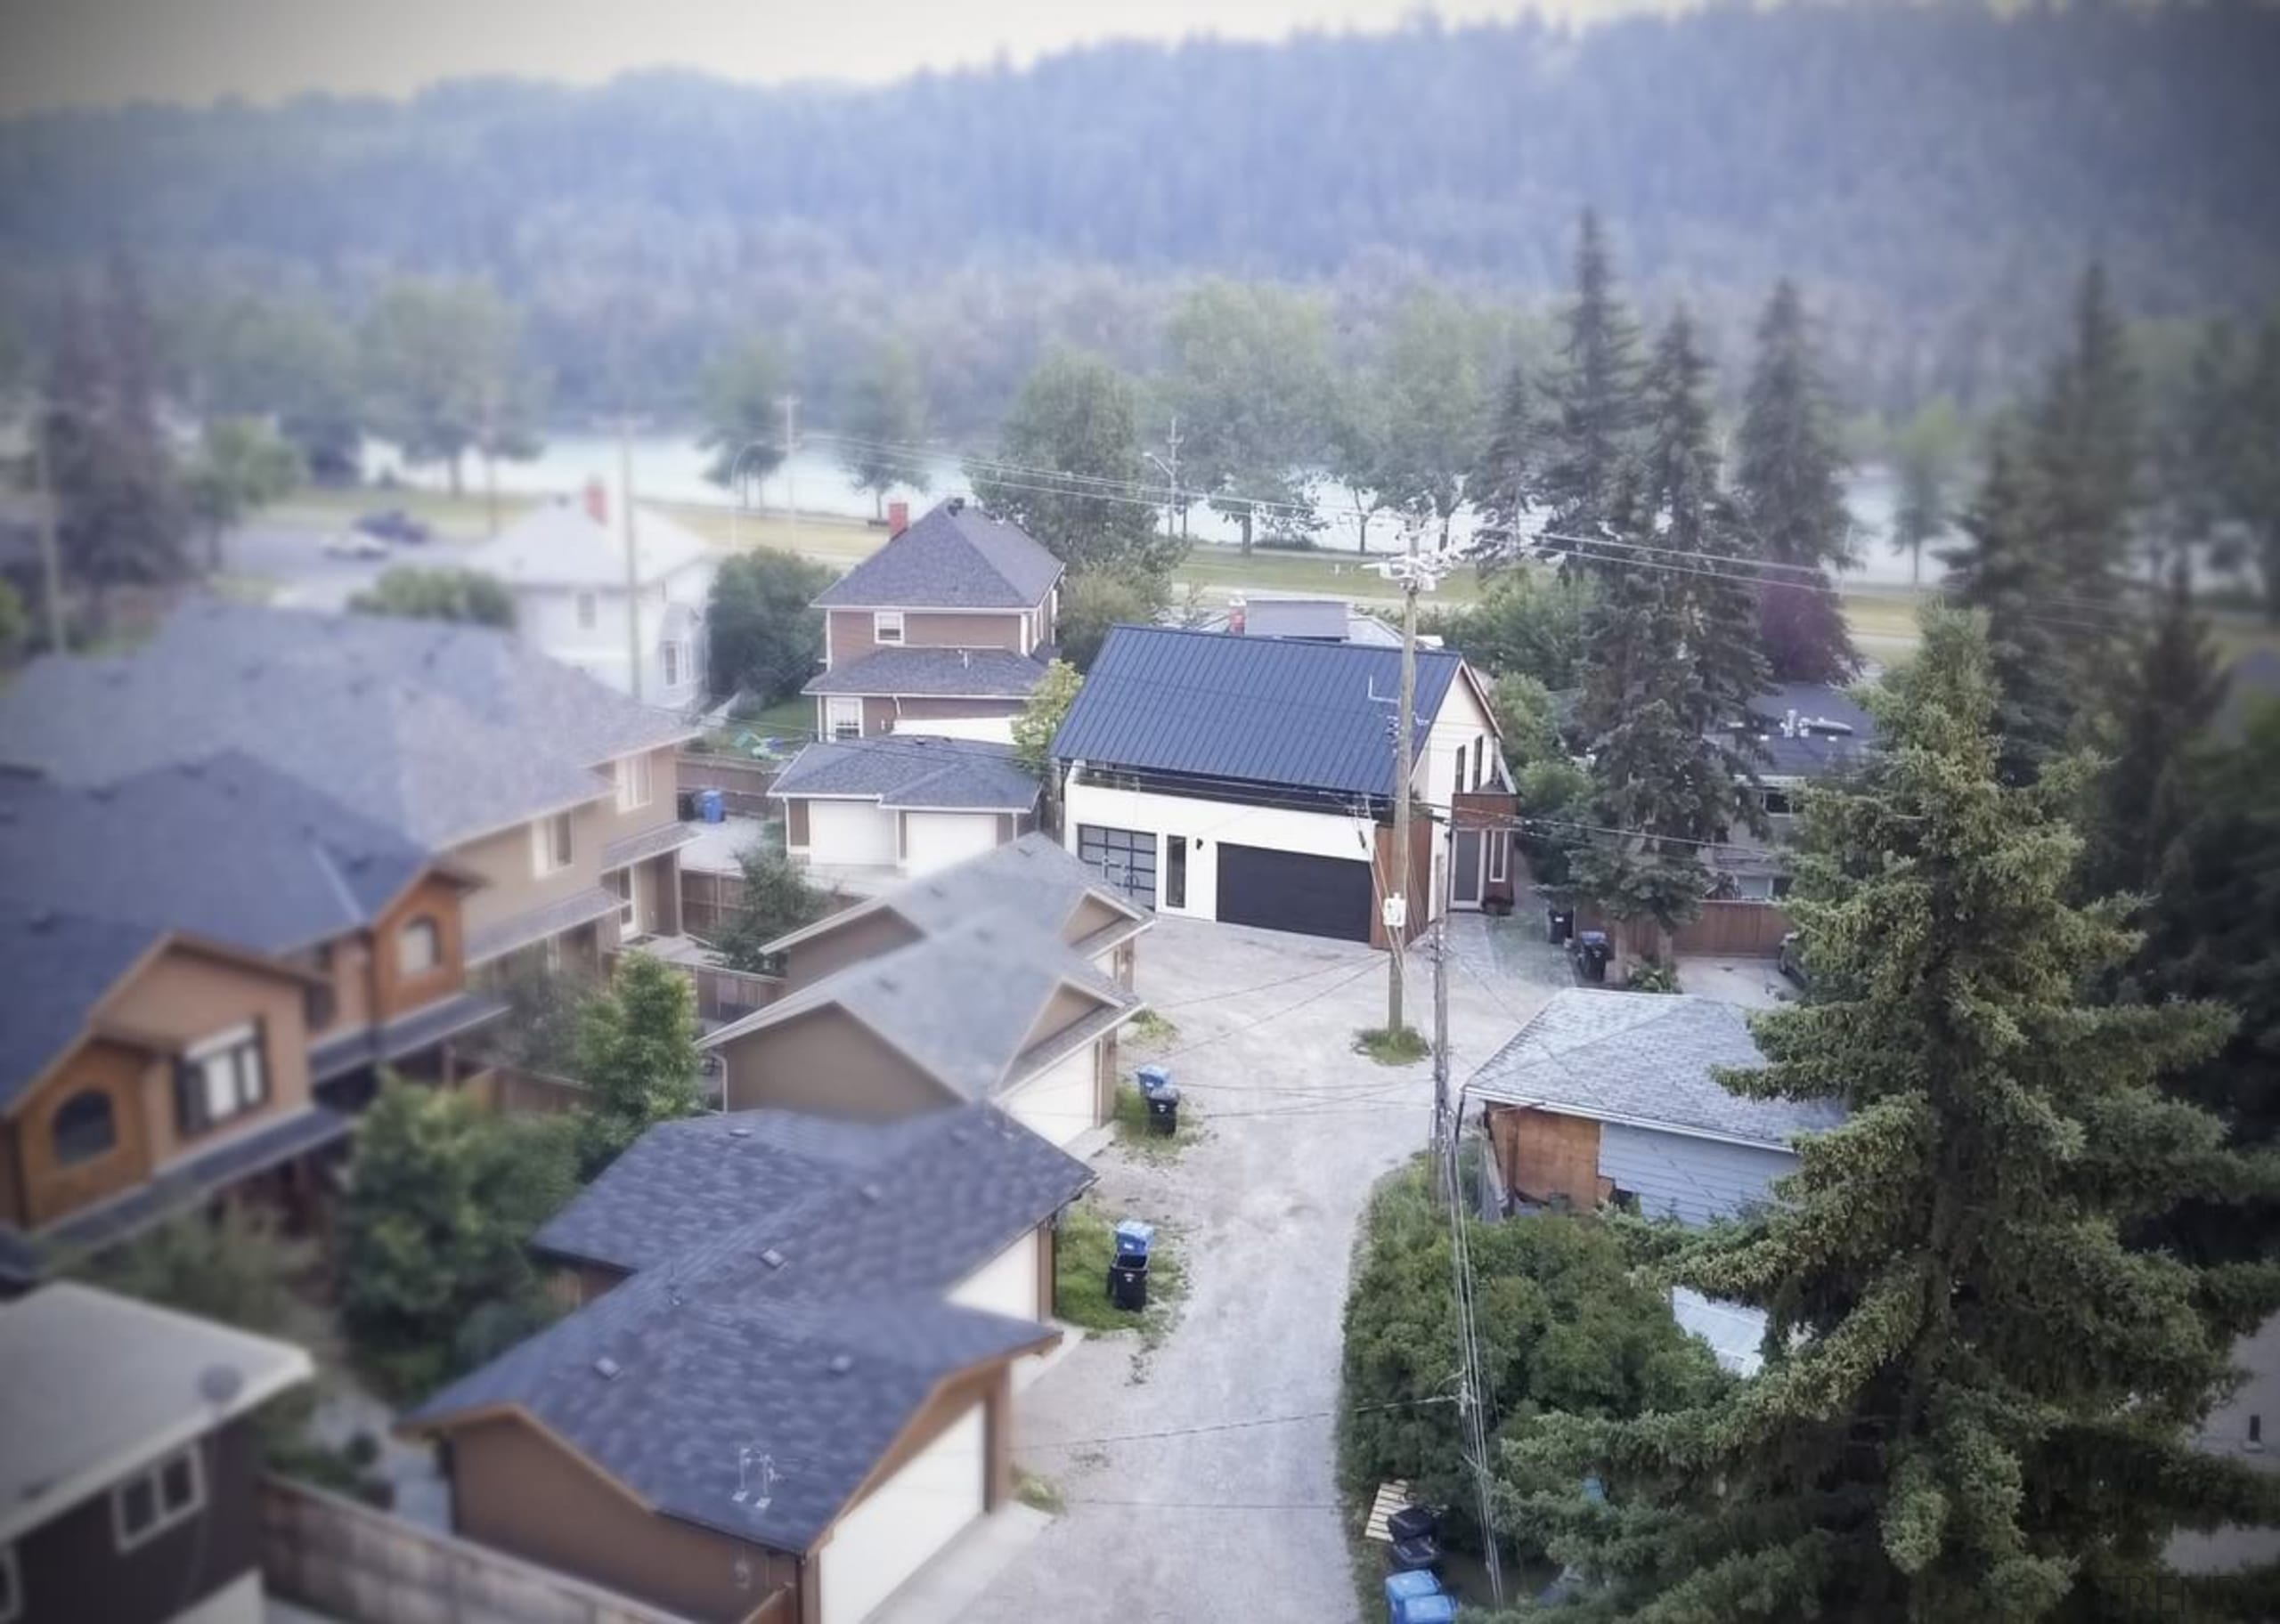 Models or a photo? This perspective is a architecture, city, cottage, estate, hill station, home, house, landscape, mountain, mountain range, neighbourhood, property, real estate, residential area, roof, rural area, sky, snow, suburb, town, tree, urban area, village, winter, gray